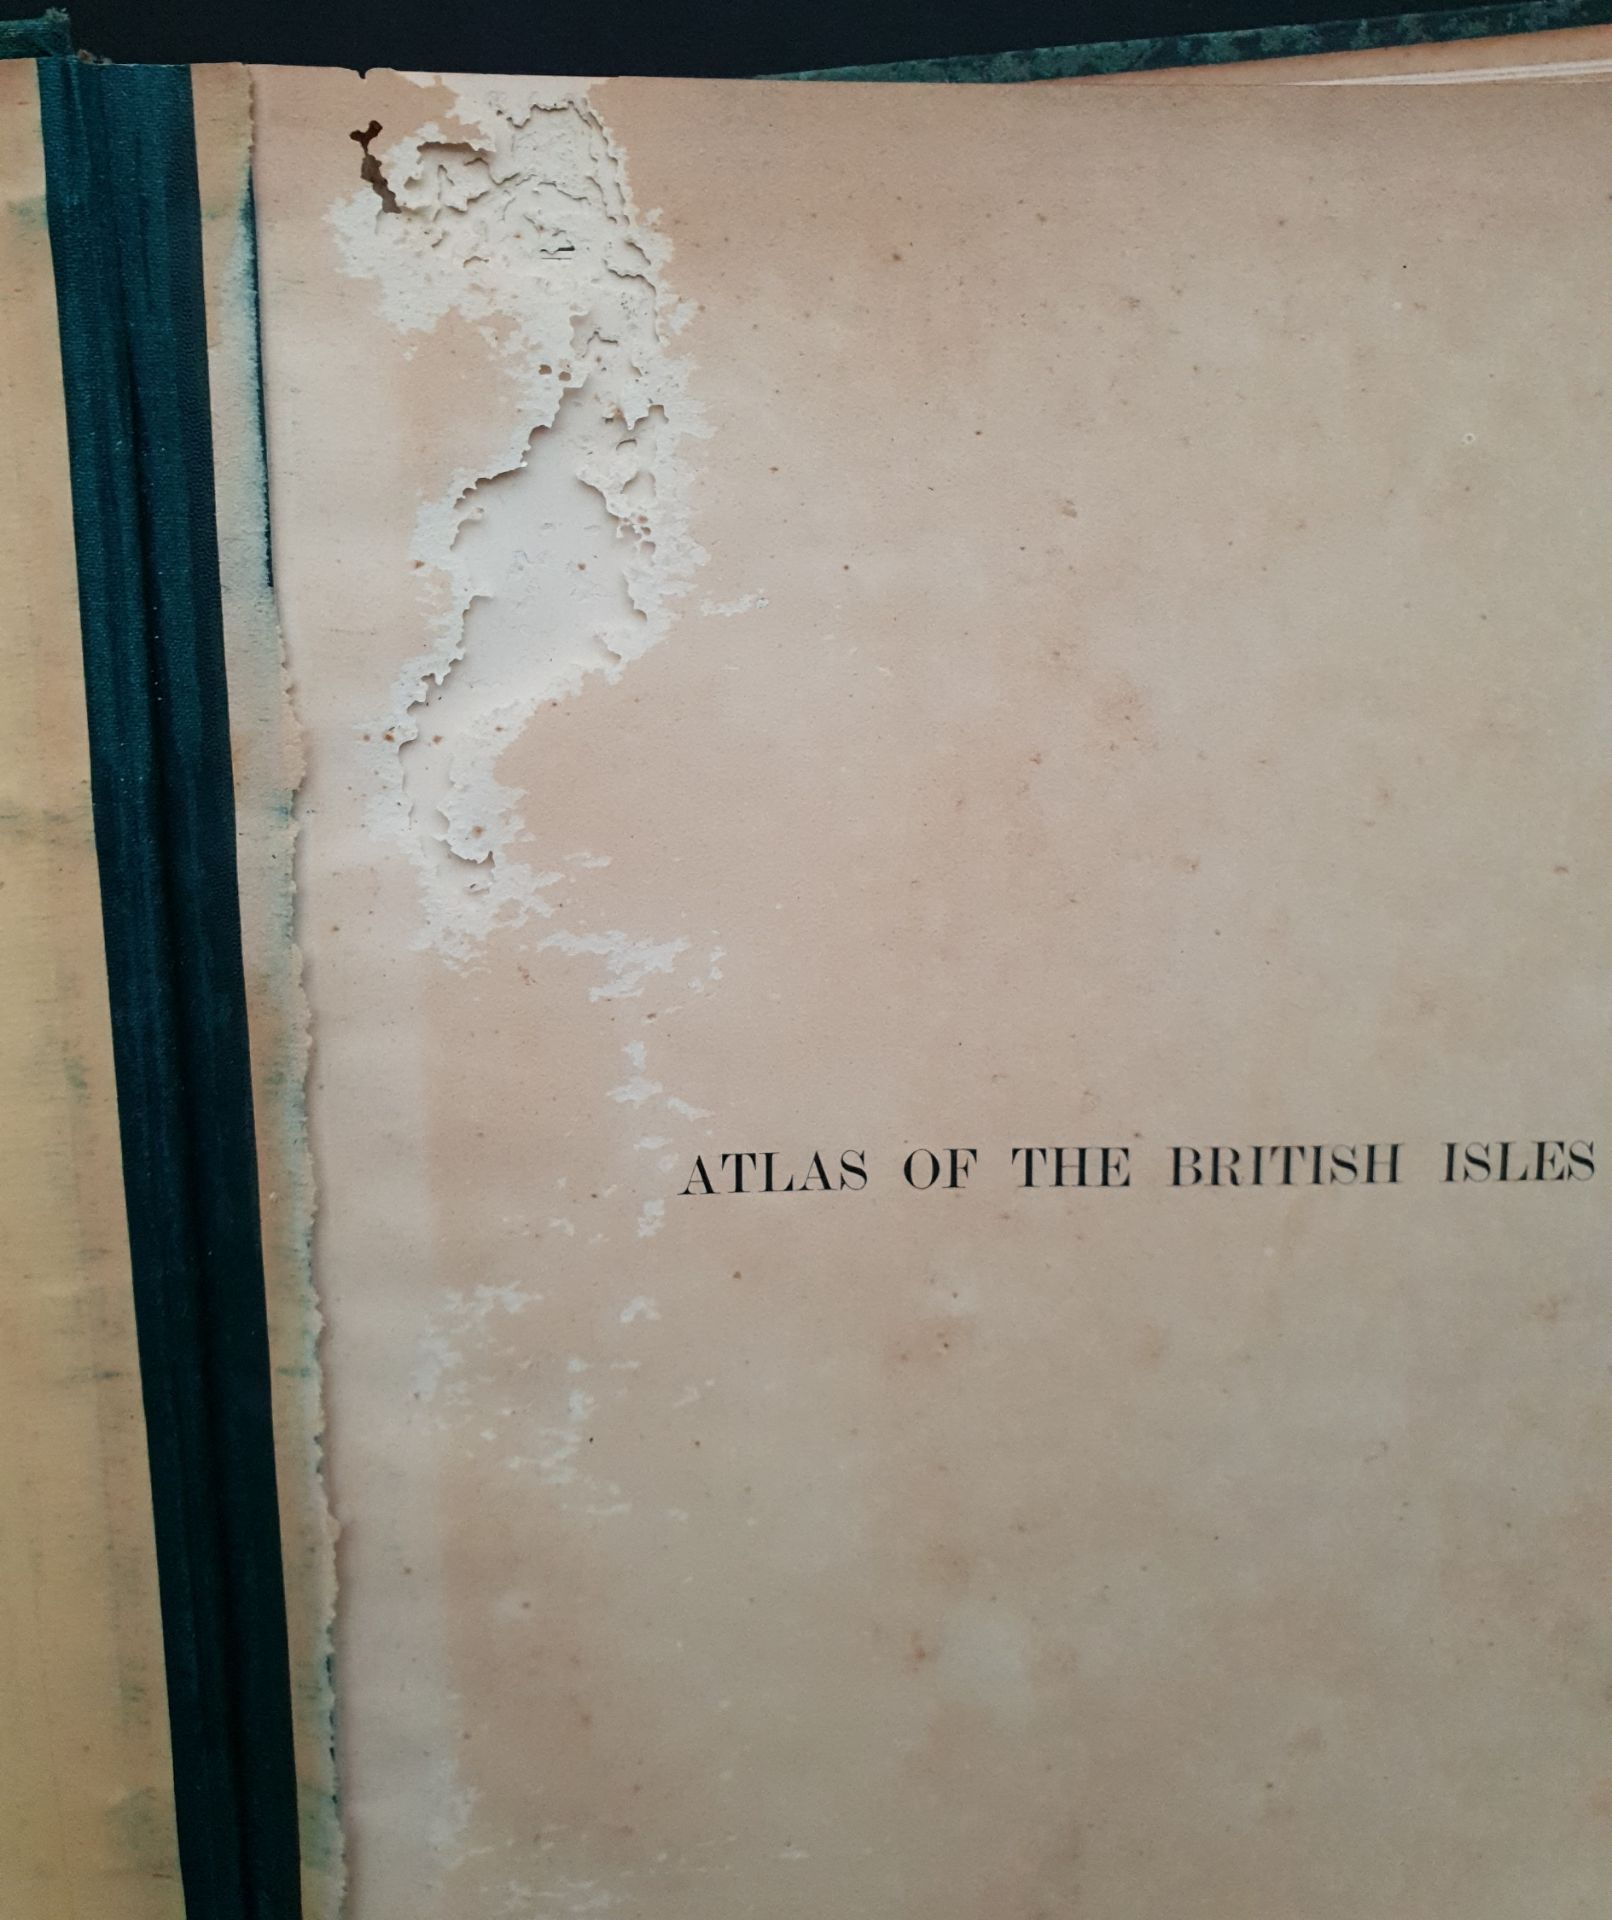 Antiques 1899 Book Atlas Of The British Isles G W Bacon & Co. - Image 7 of 15